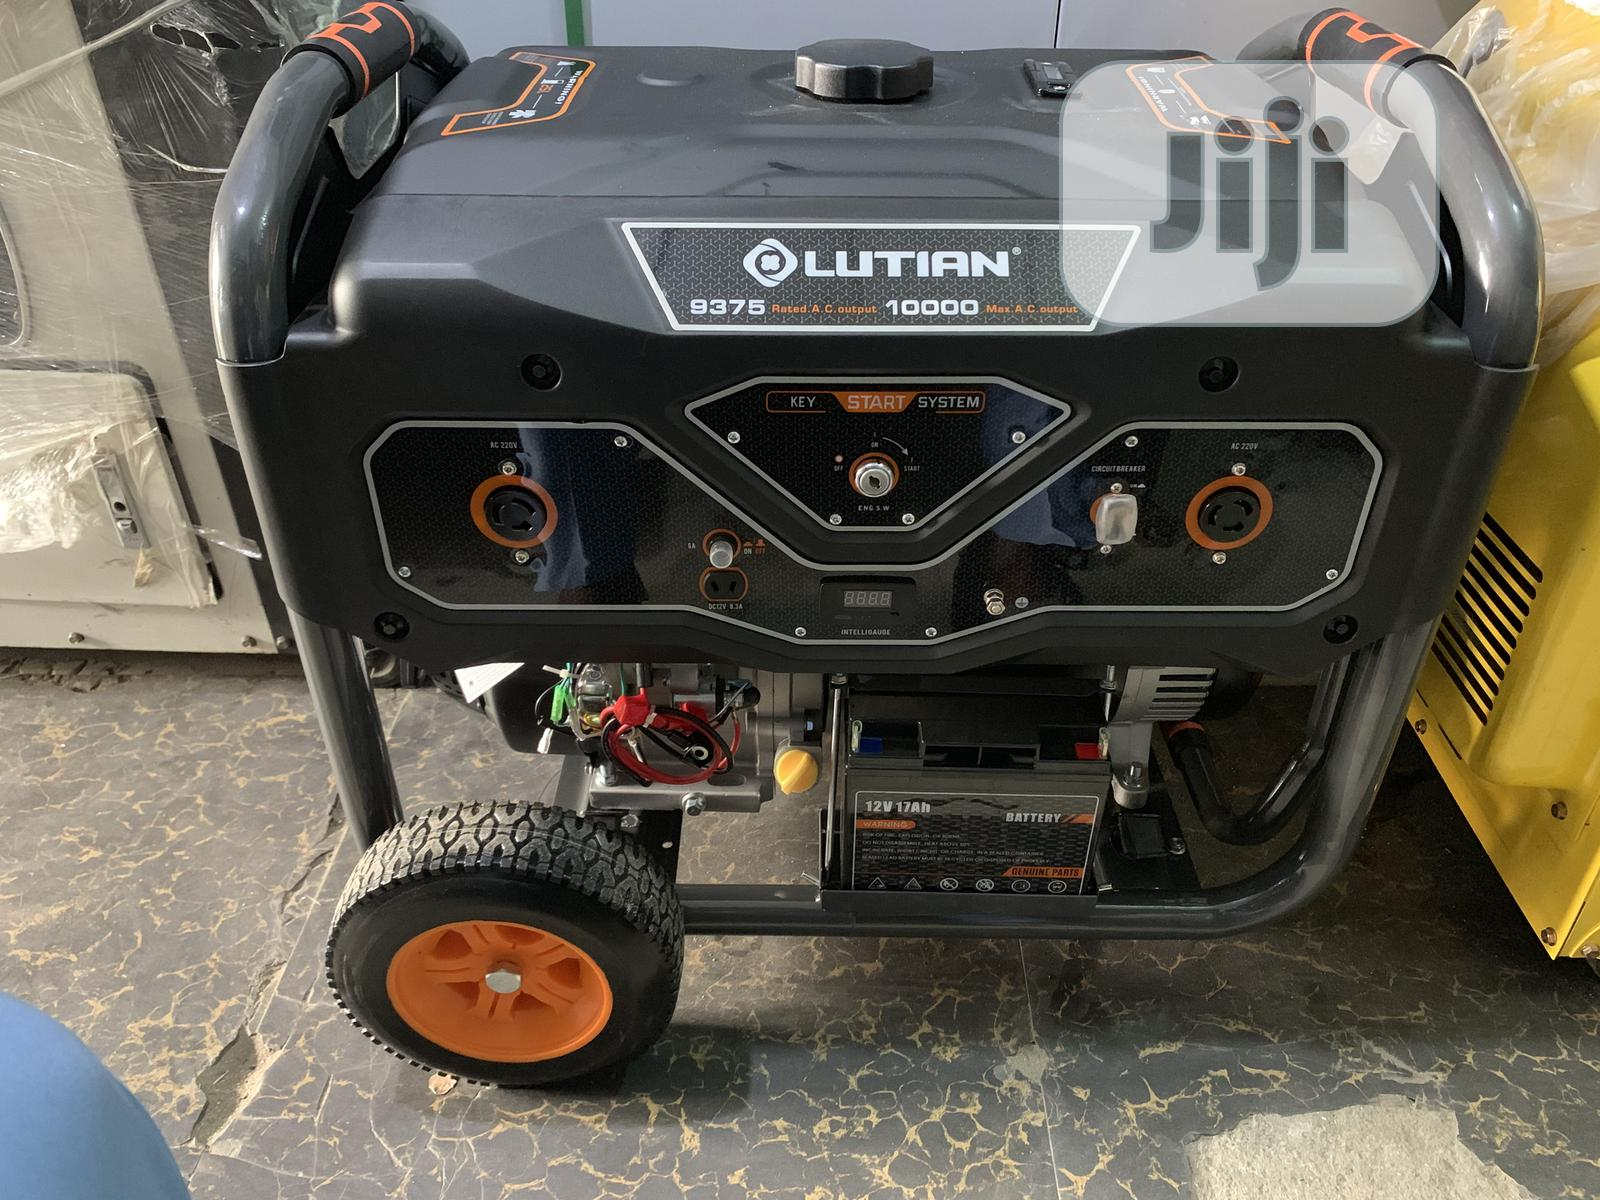 New Model Lutian Petrol Low Noise Generator 10 Kva | Electrical Equipment for sale in Ojo, Lagos State, Nigeria